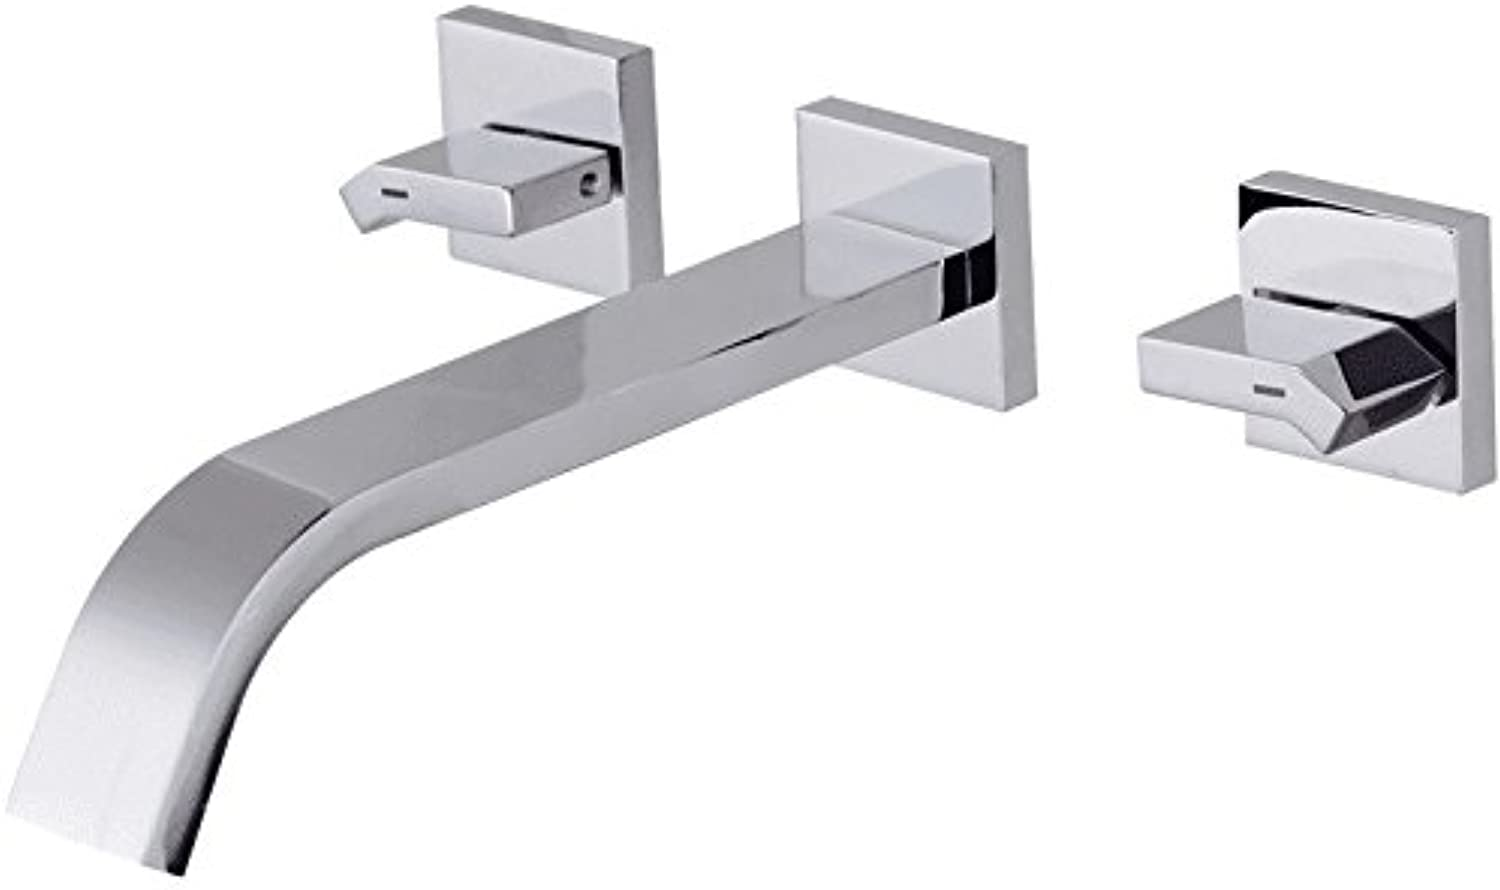 Jduskfl Faucet Bathroom Faucet New Waterfall Rain Thermostatic Shower Column Body Hot and Cold Shower Panel Faucet with Temperature Digital Display,Chrome,Big Lateral Inflow 1